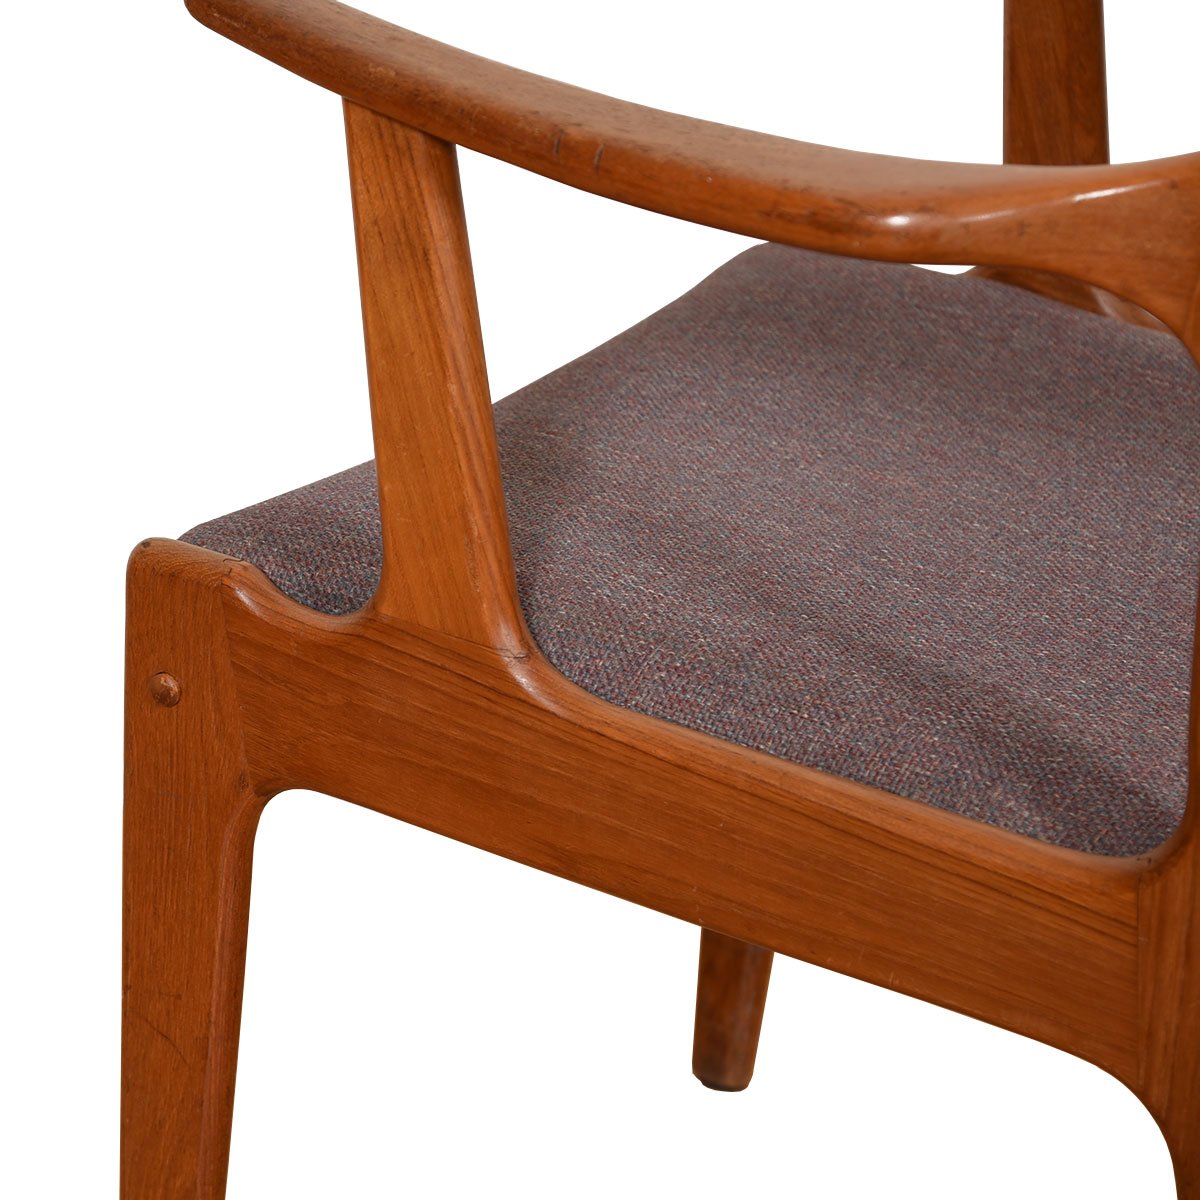 Danish Modern Teak Pair of Dining / Accent Arm Chairs